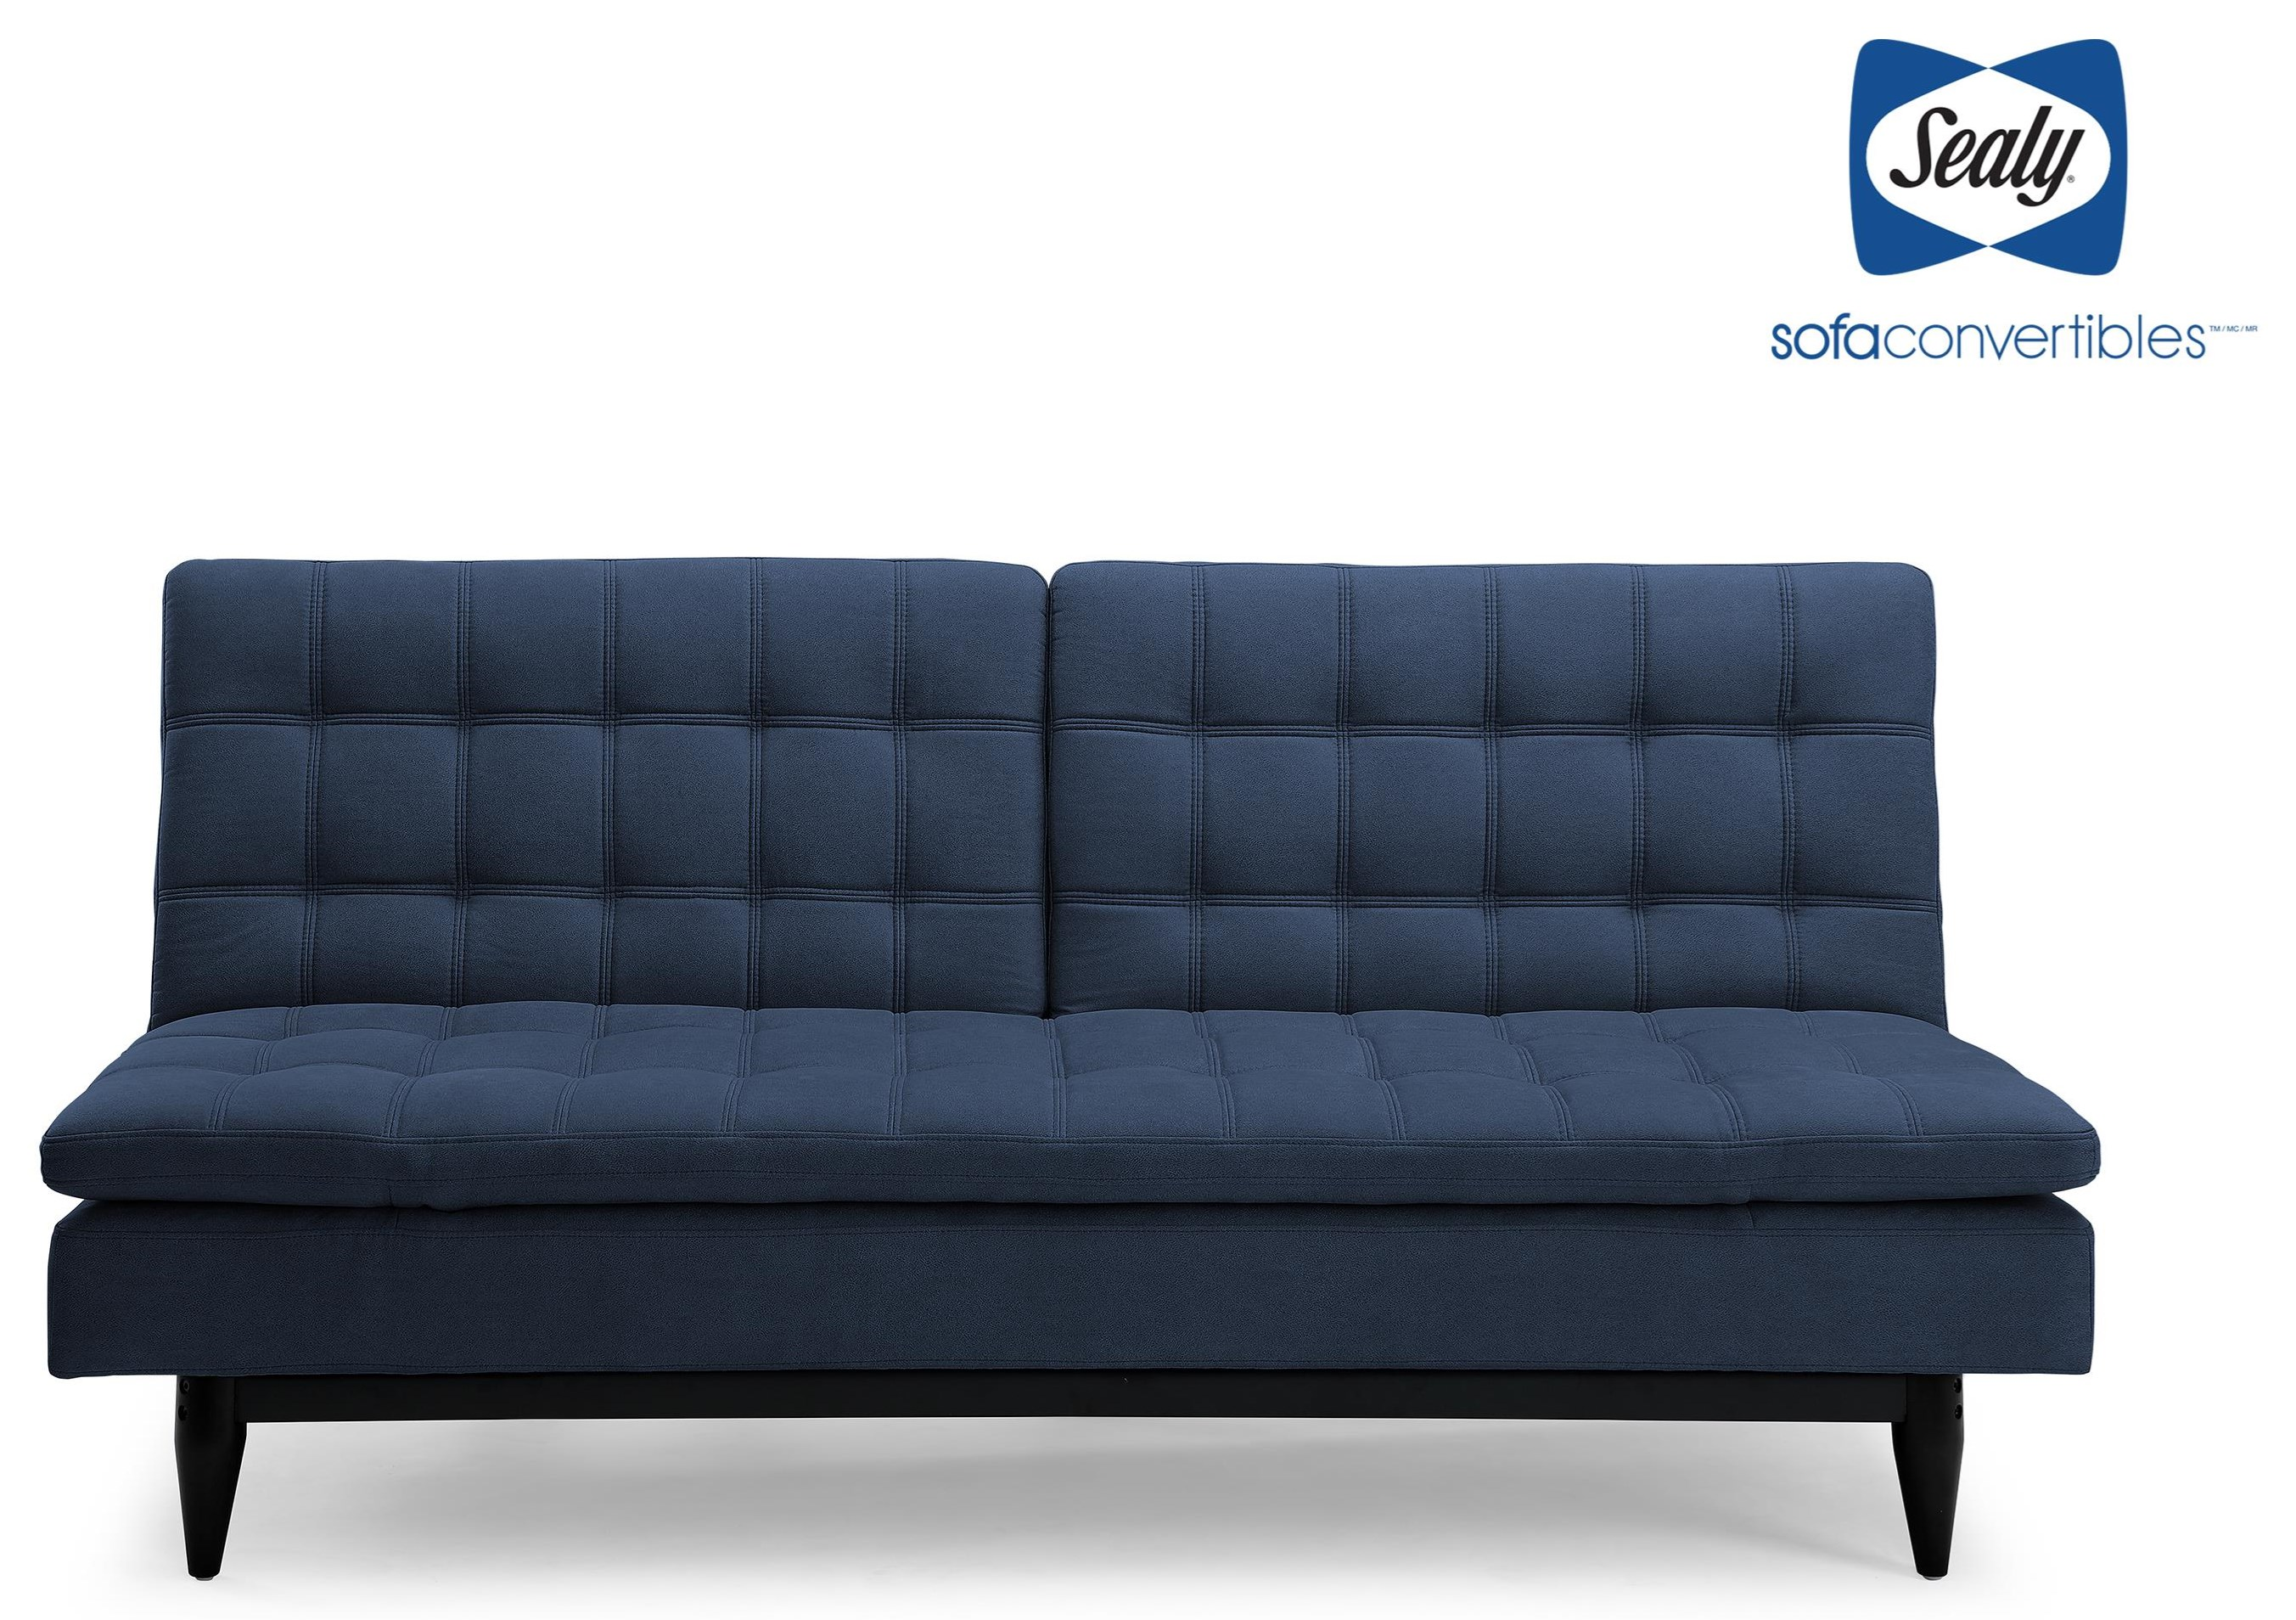 Tripoli Sofa Convertible with Adjustable Arms by Sealy Sofa Convertibles at Red Knot